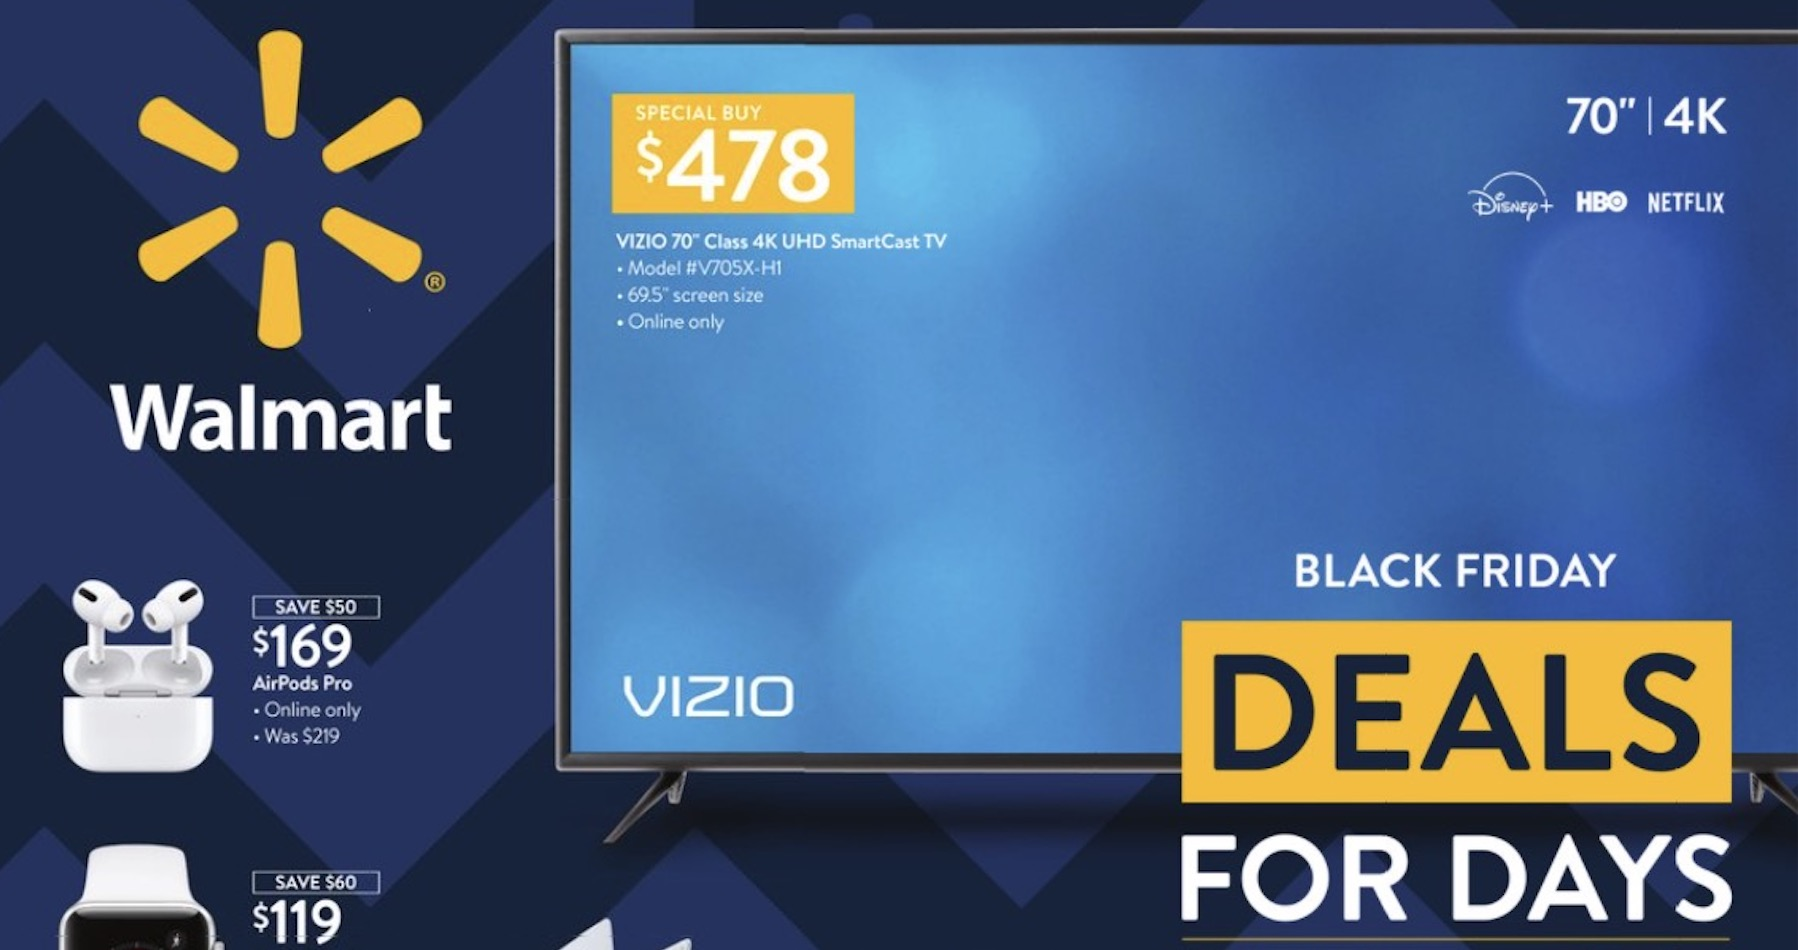 Walmart Black Friday Here Are The Best Deals You Can Find Right Now Online